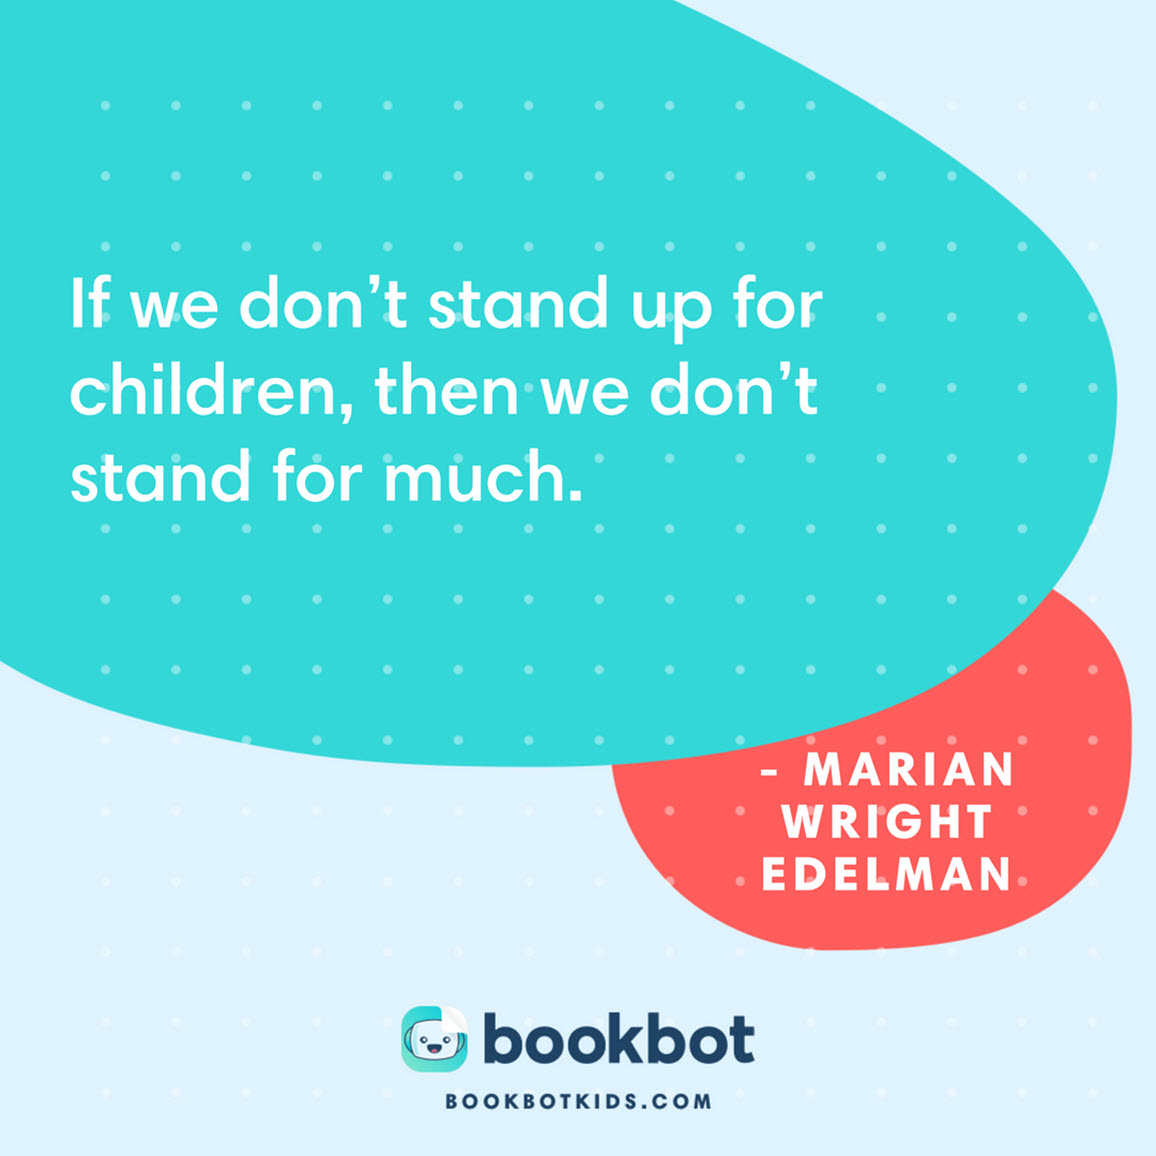 If we don't stand up for children, then we don't stand for much. – Marian Wright Edelman